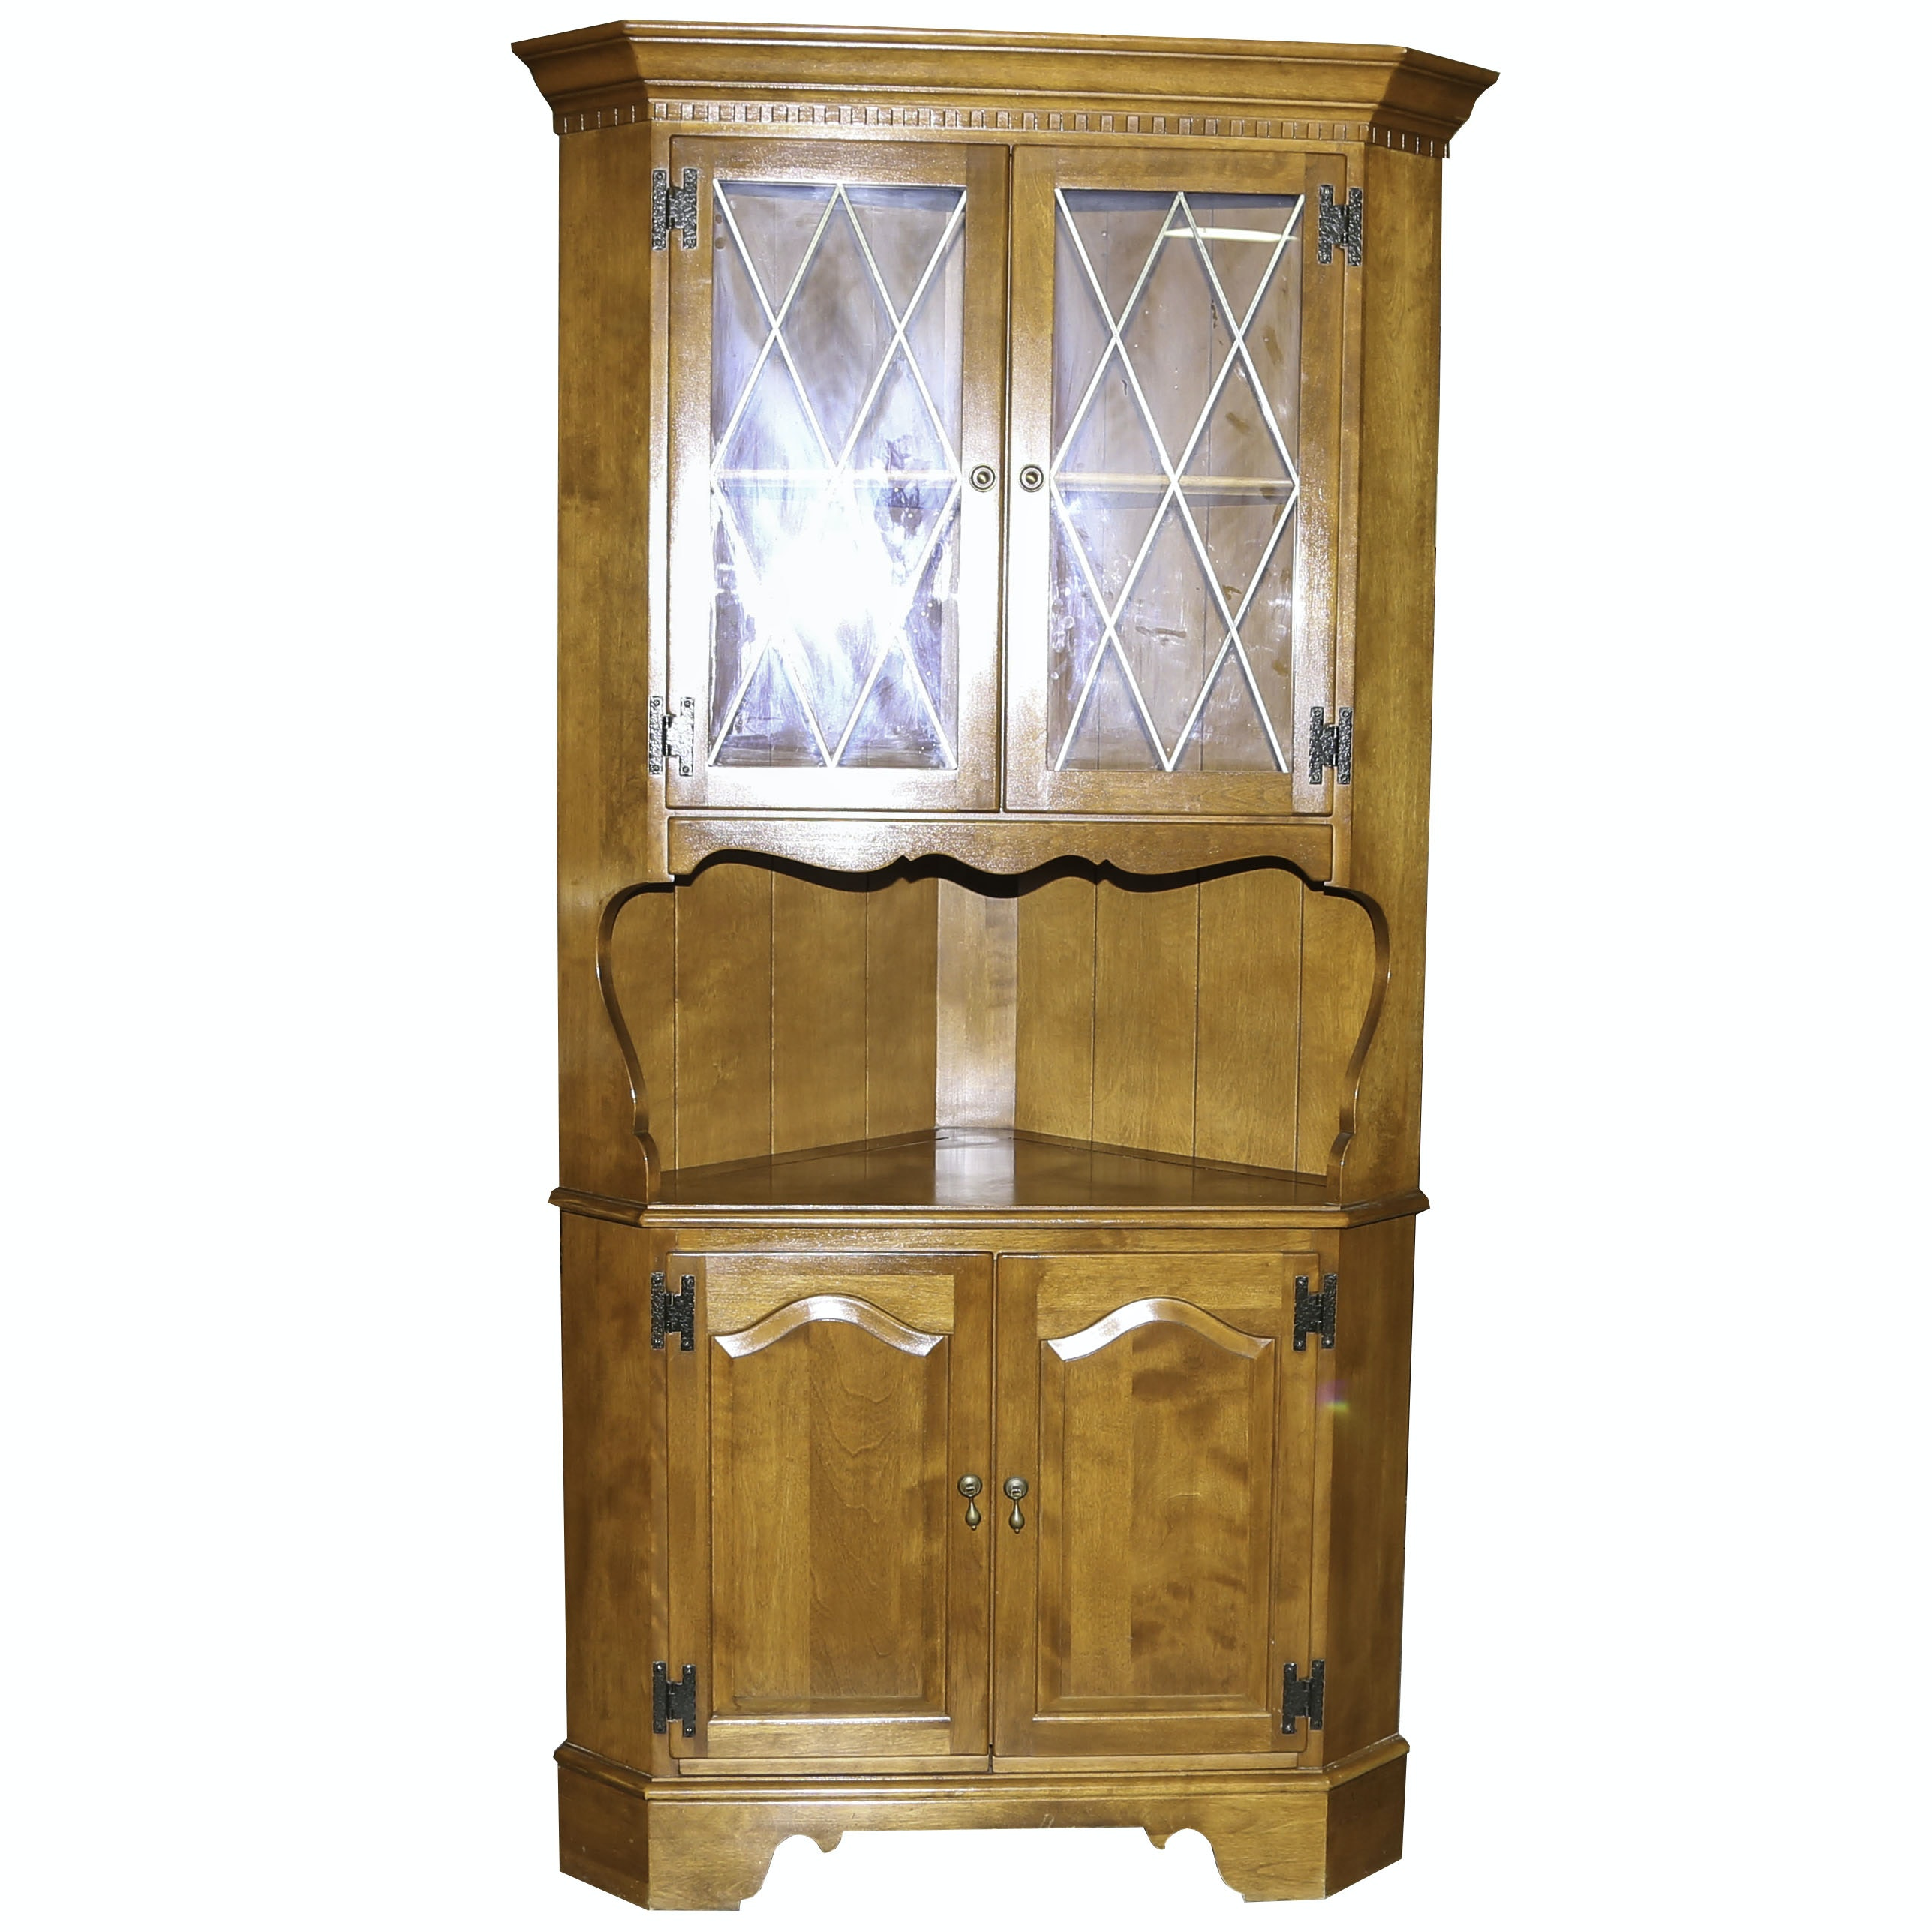 Colonial Revival Style Corner Cabinet By Ethan Allen ...